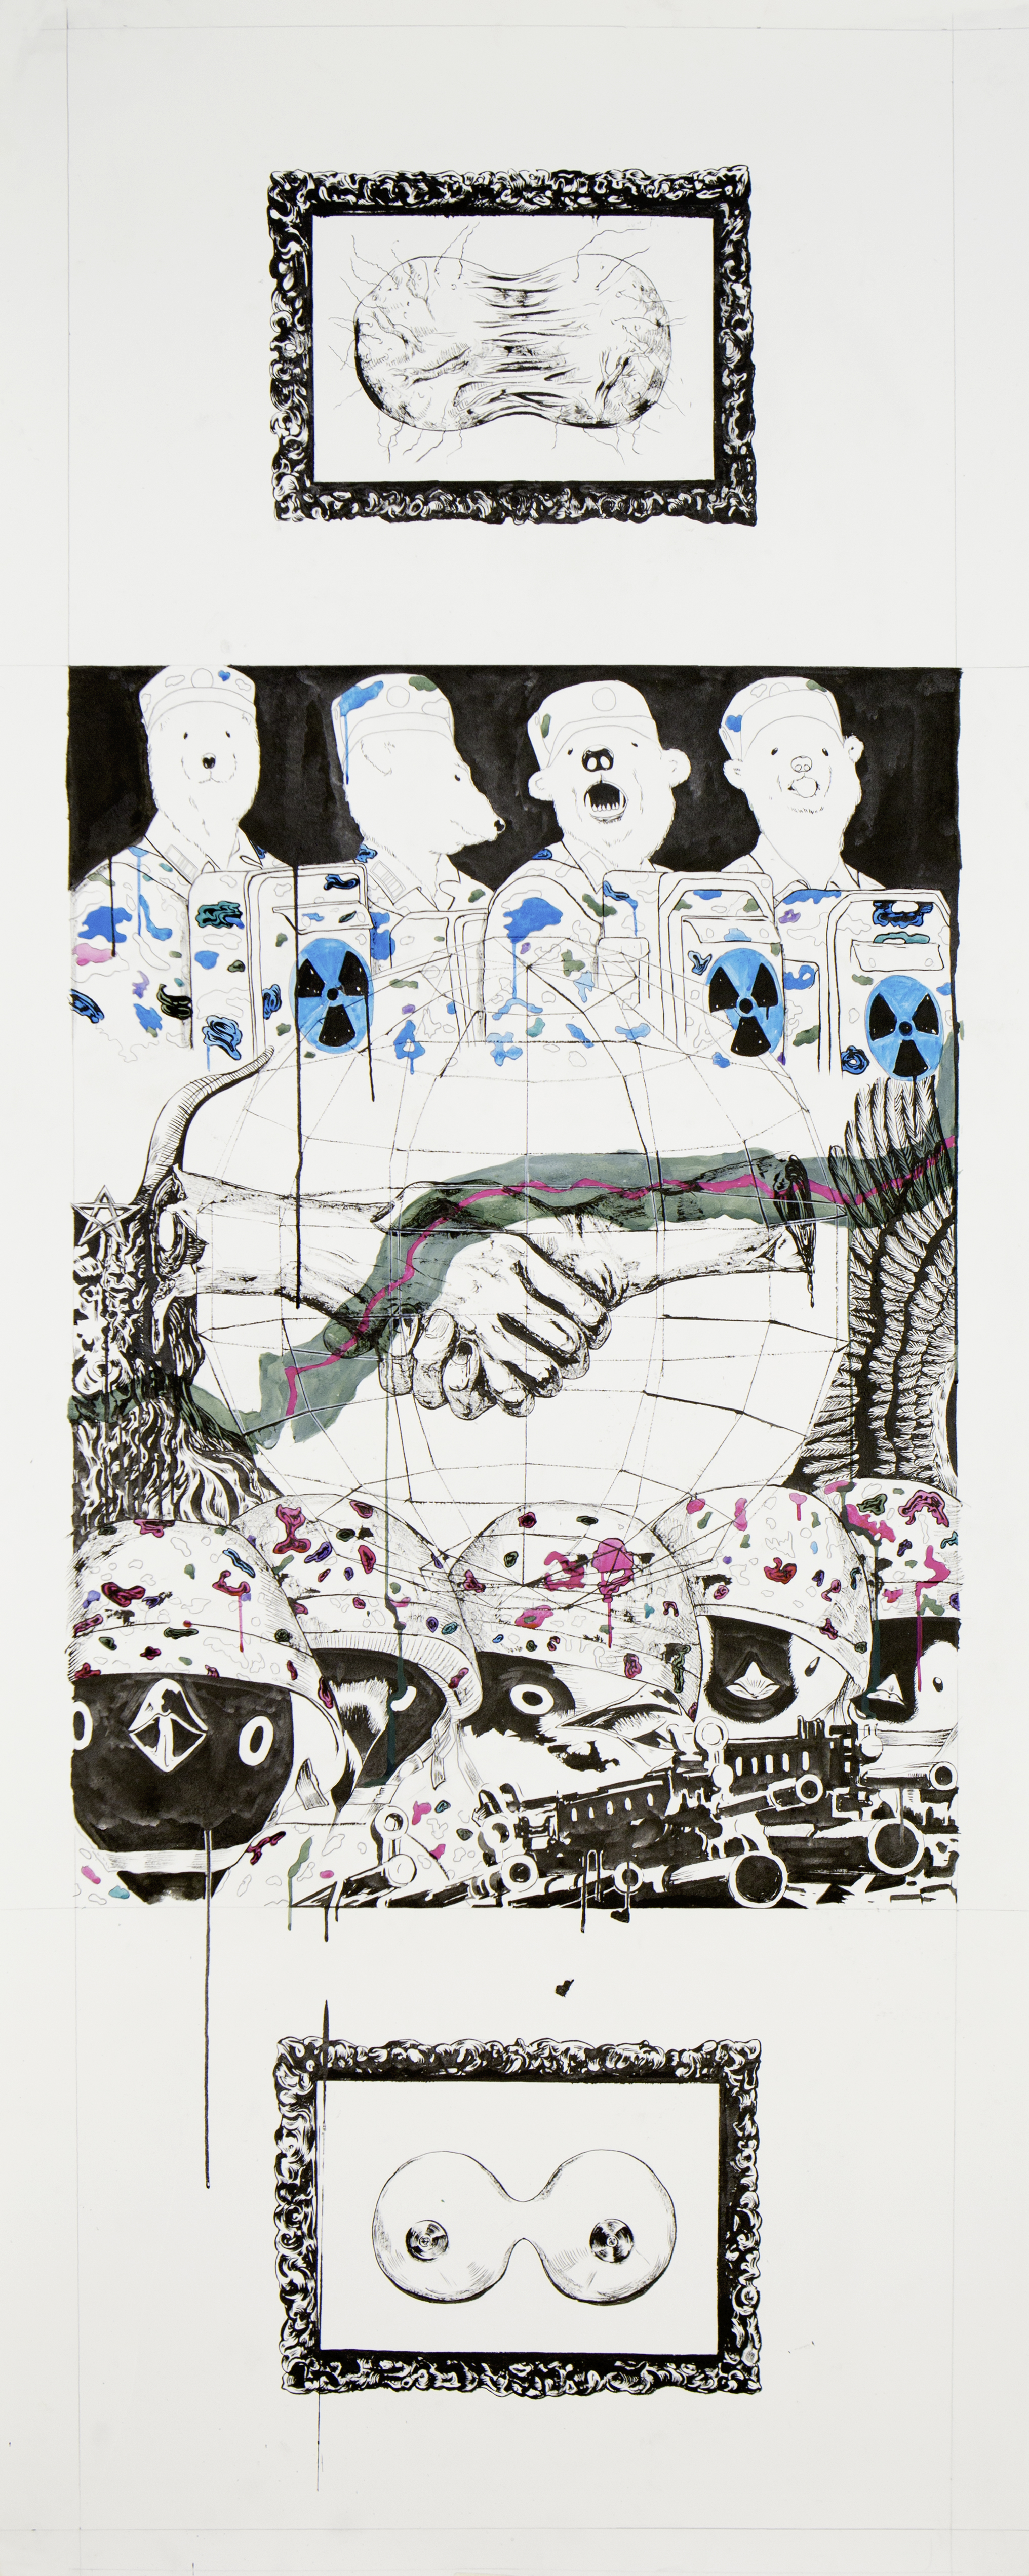 N vs S, 2018 Black ink and pigment on paper 154x62.5cm